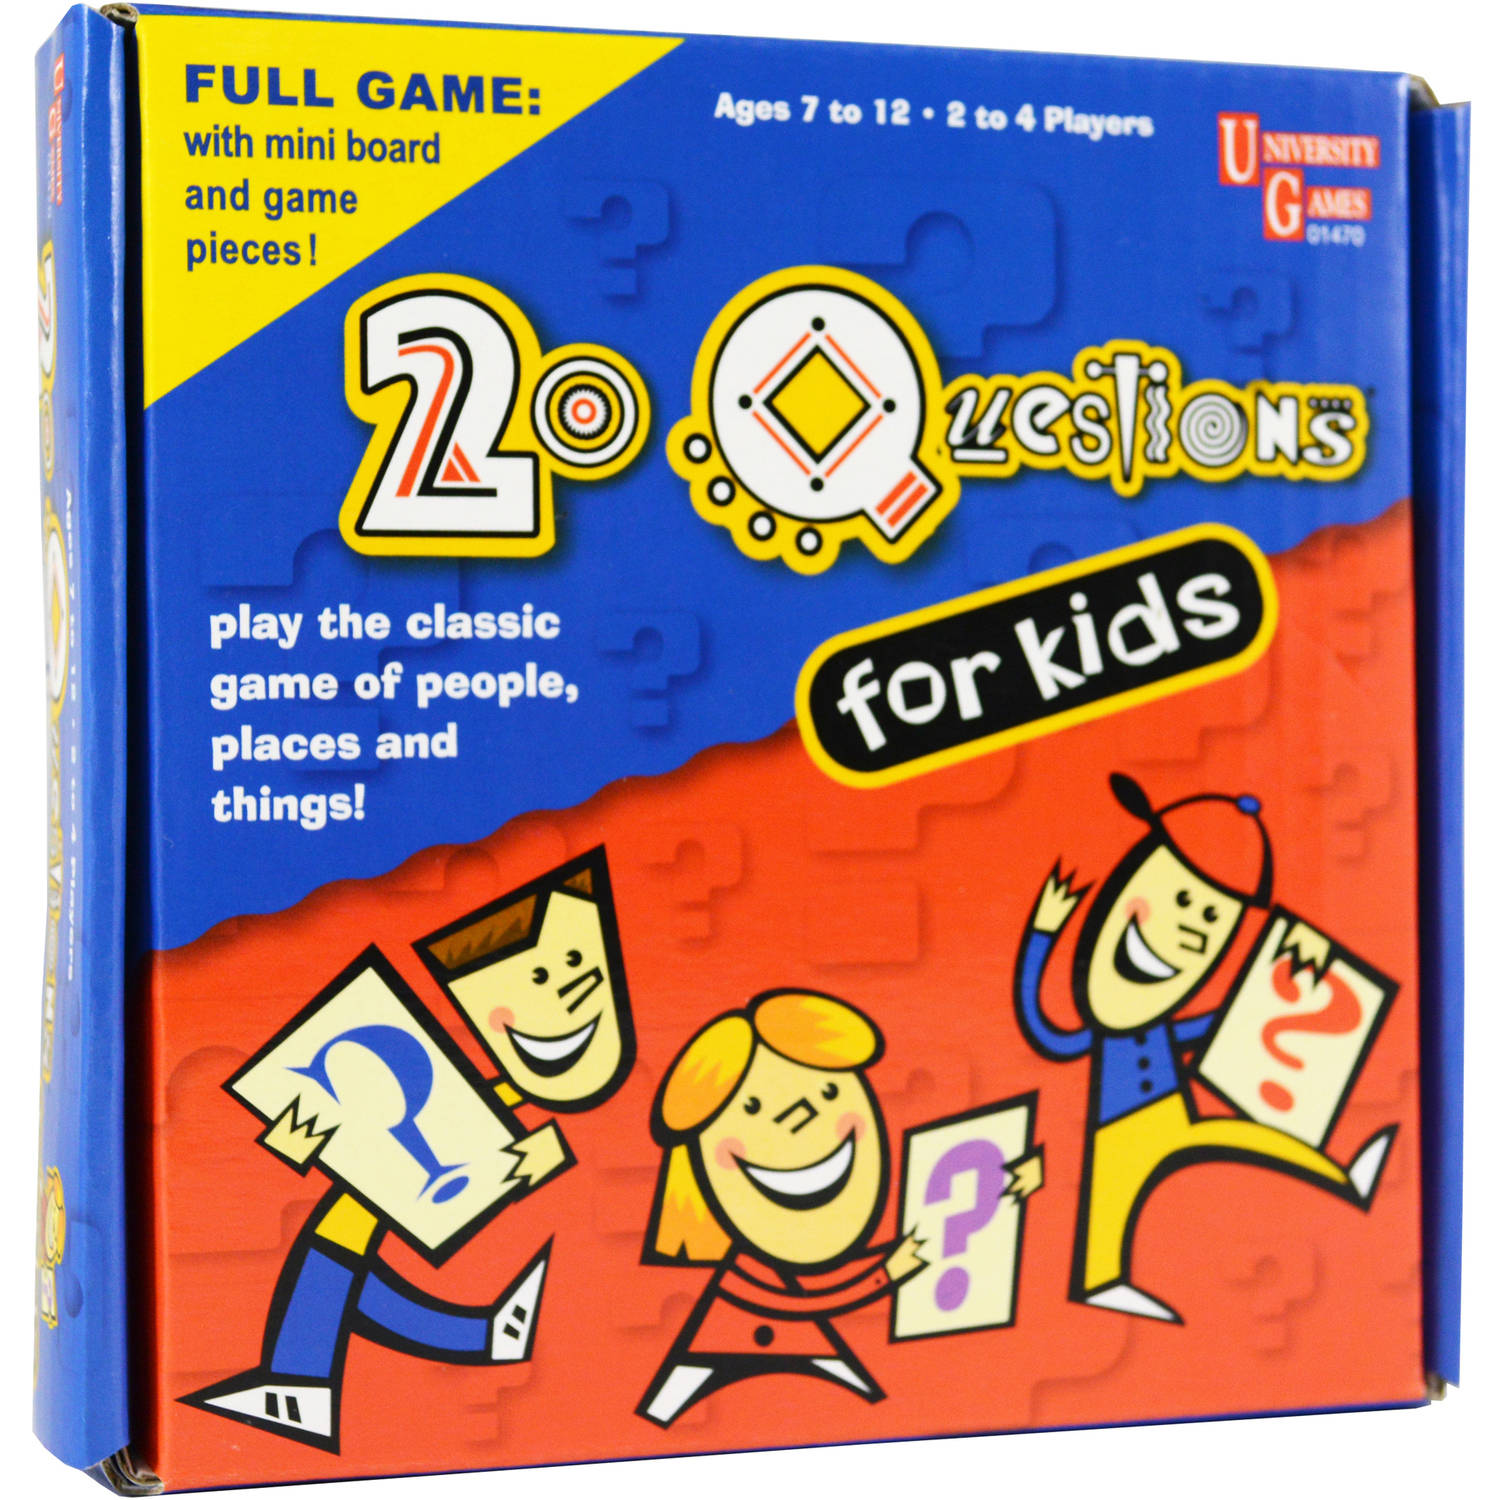 20 Questions for Kids Pocket Travel Game